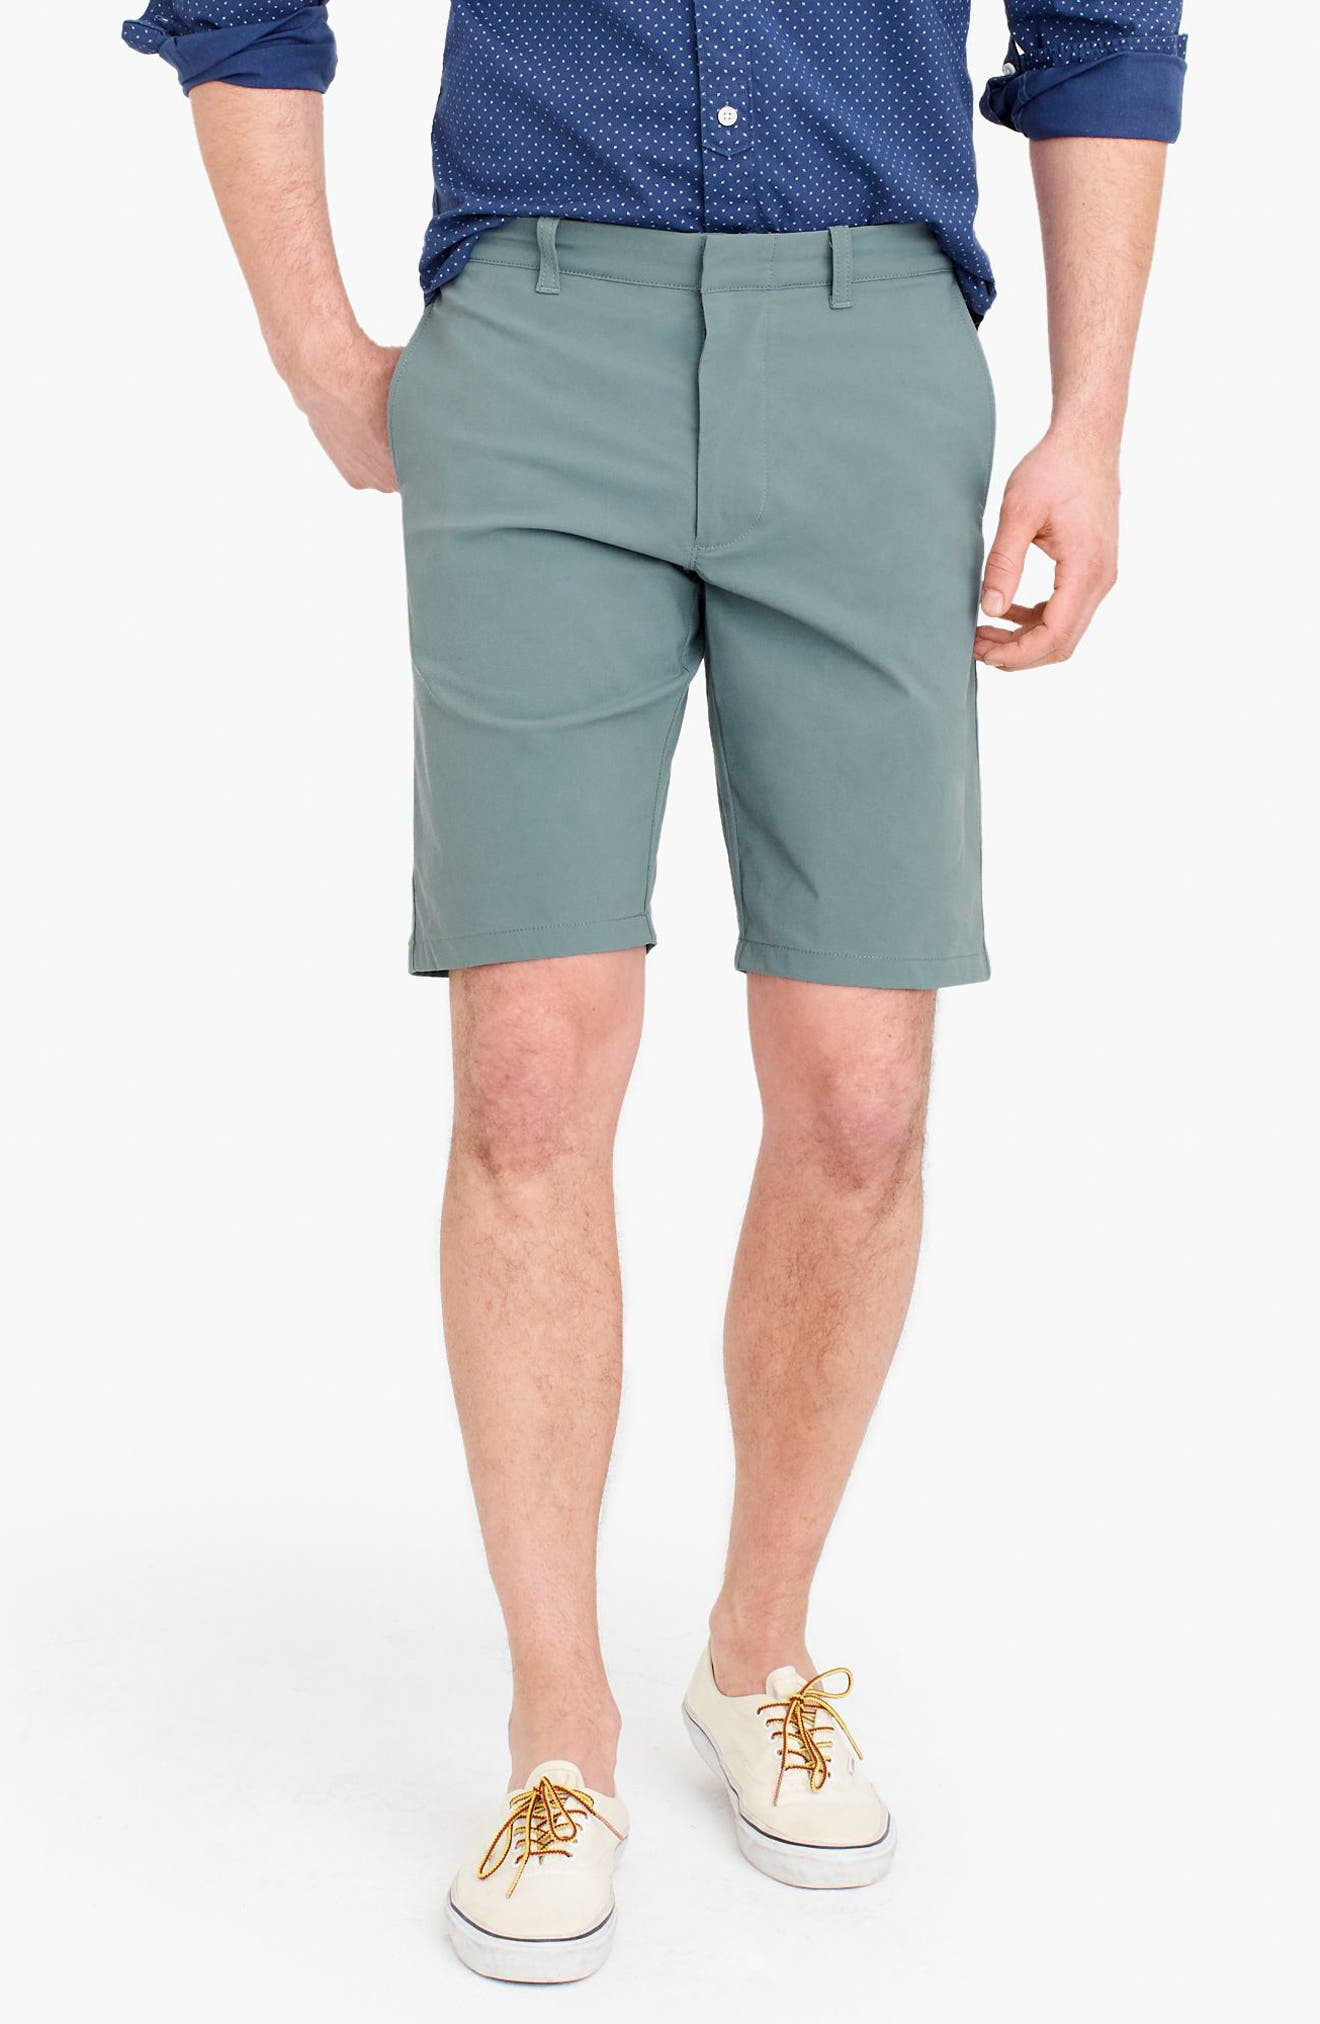 Tech Shorts,                             Alternate thumbnail 2, color,                             HIGHLINE GREY